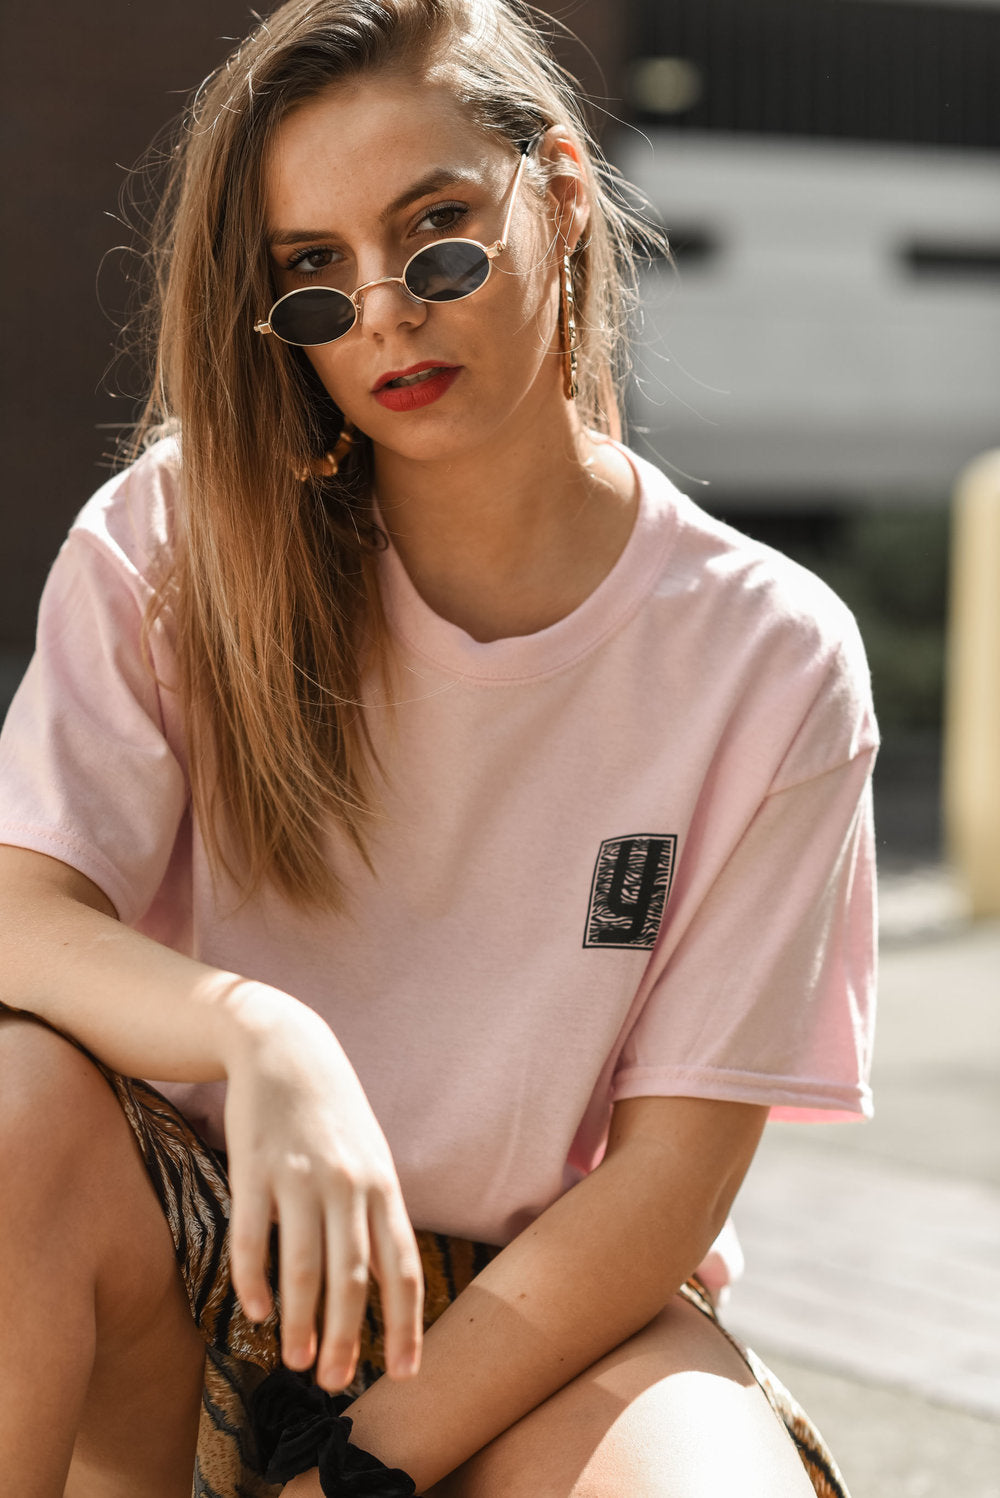 Pink t-shirt with wavey print